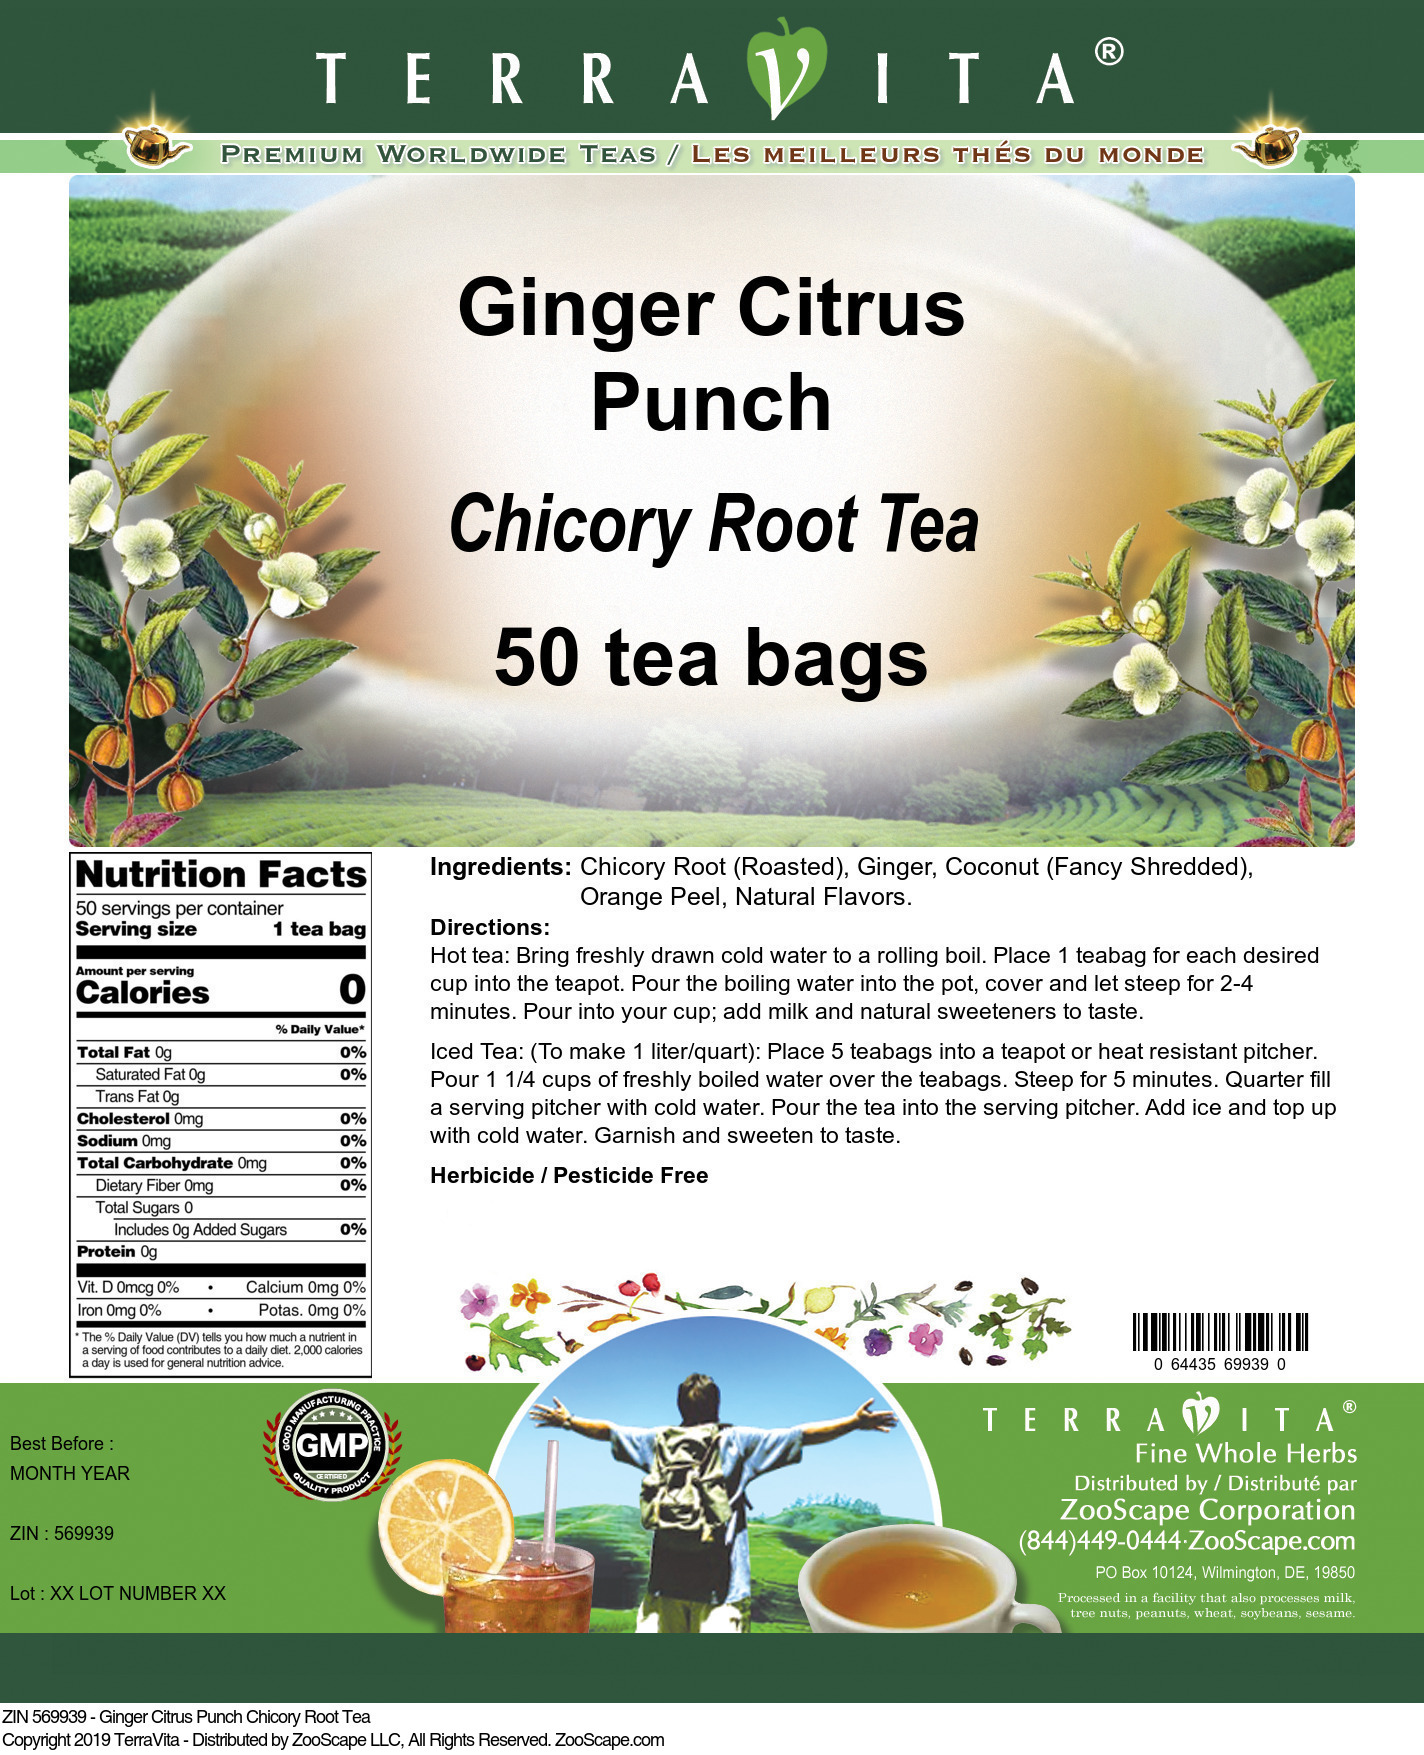 Ginger Citrus Punch Chicory Root Tea